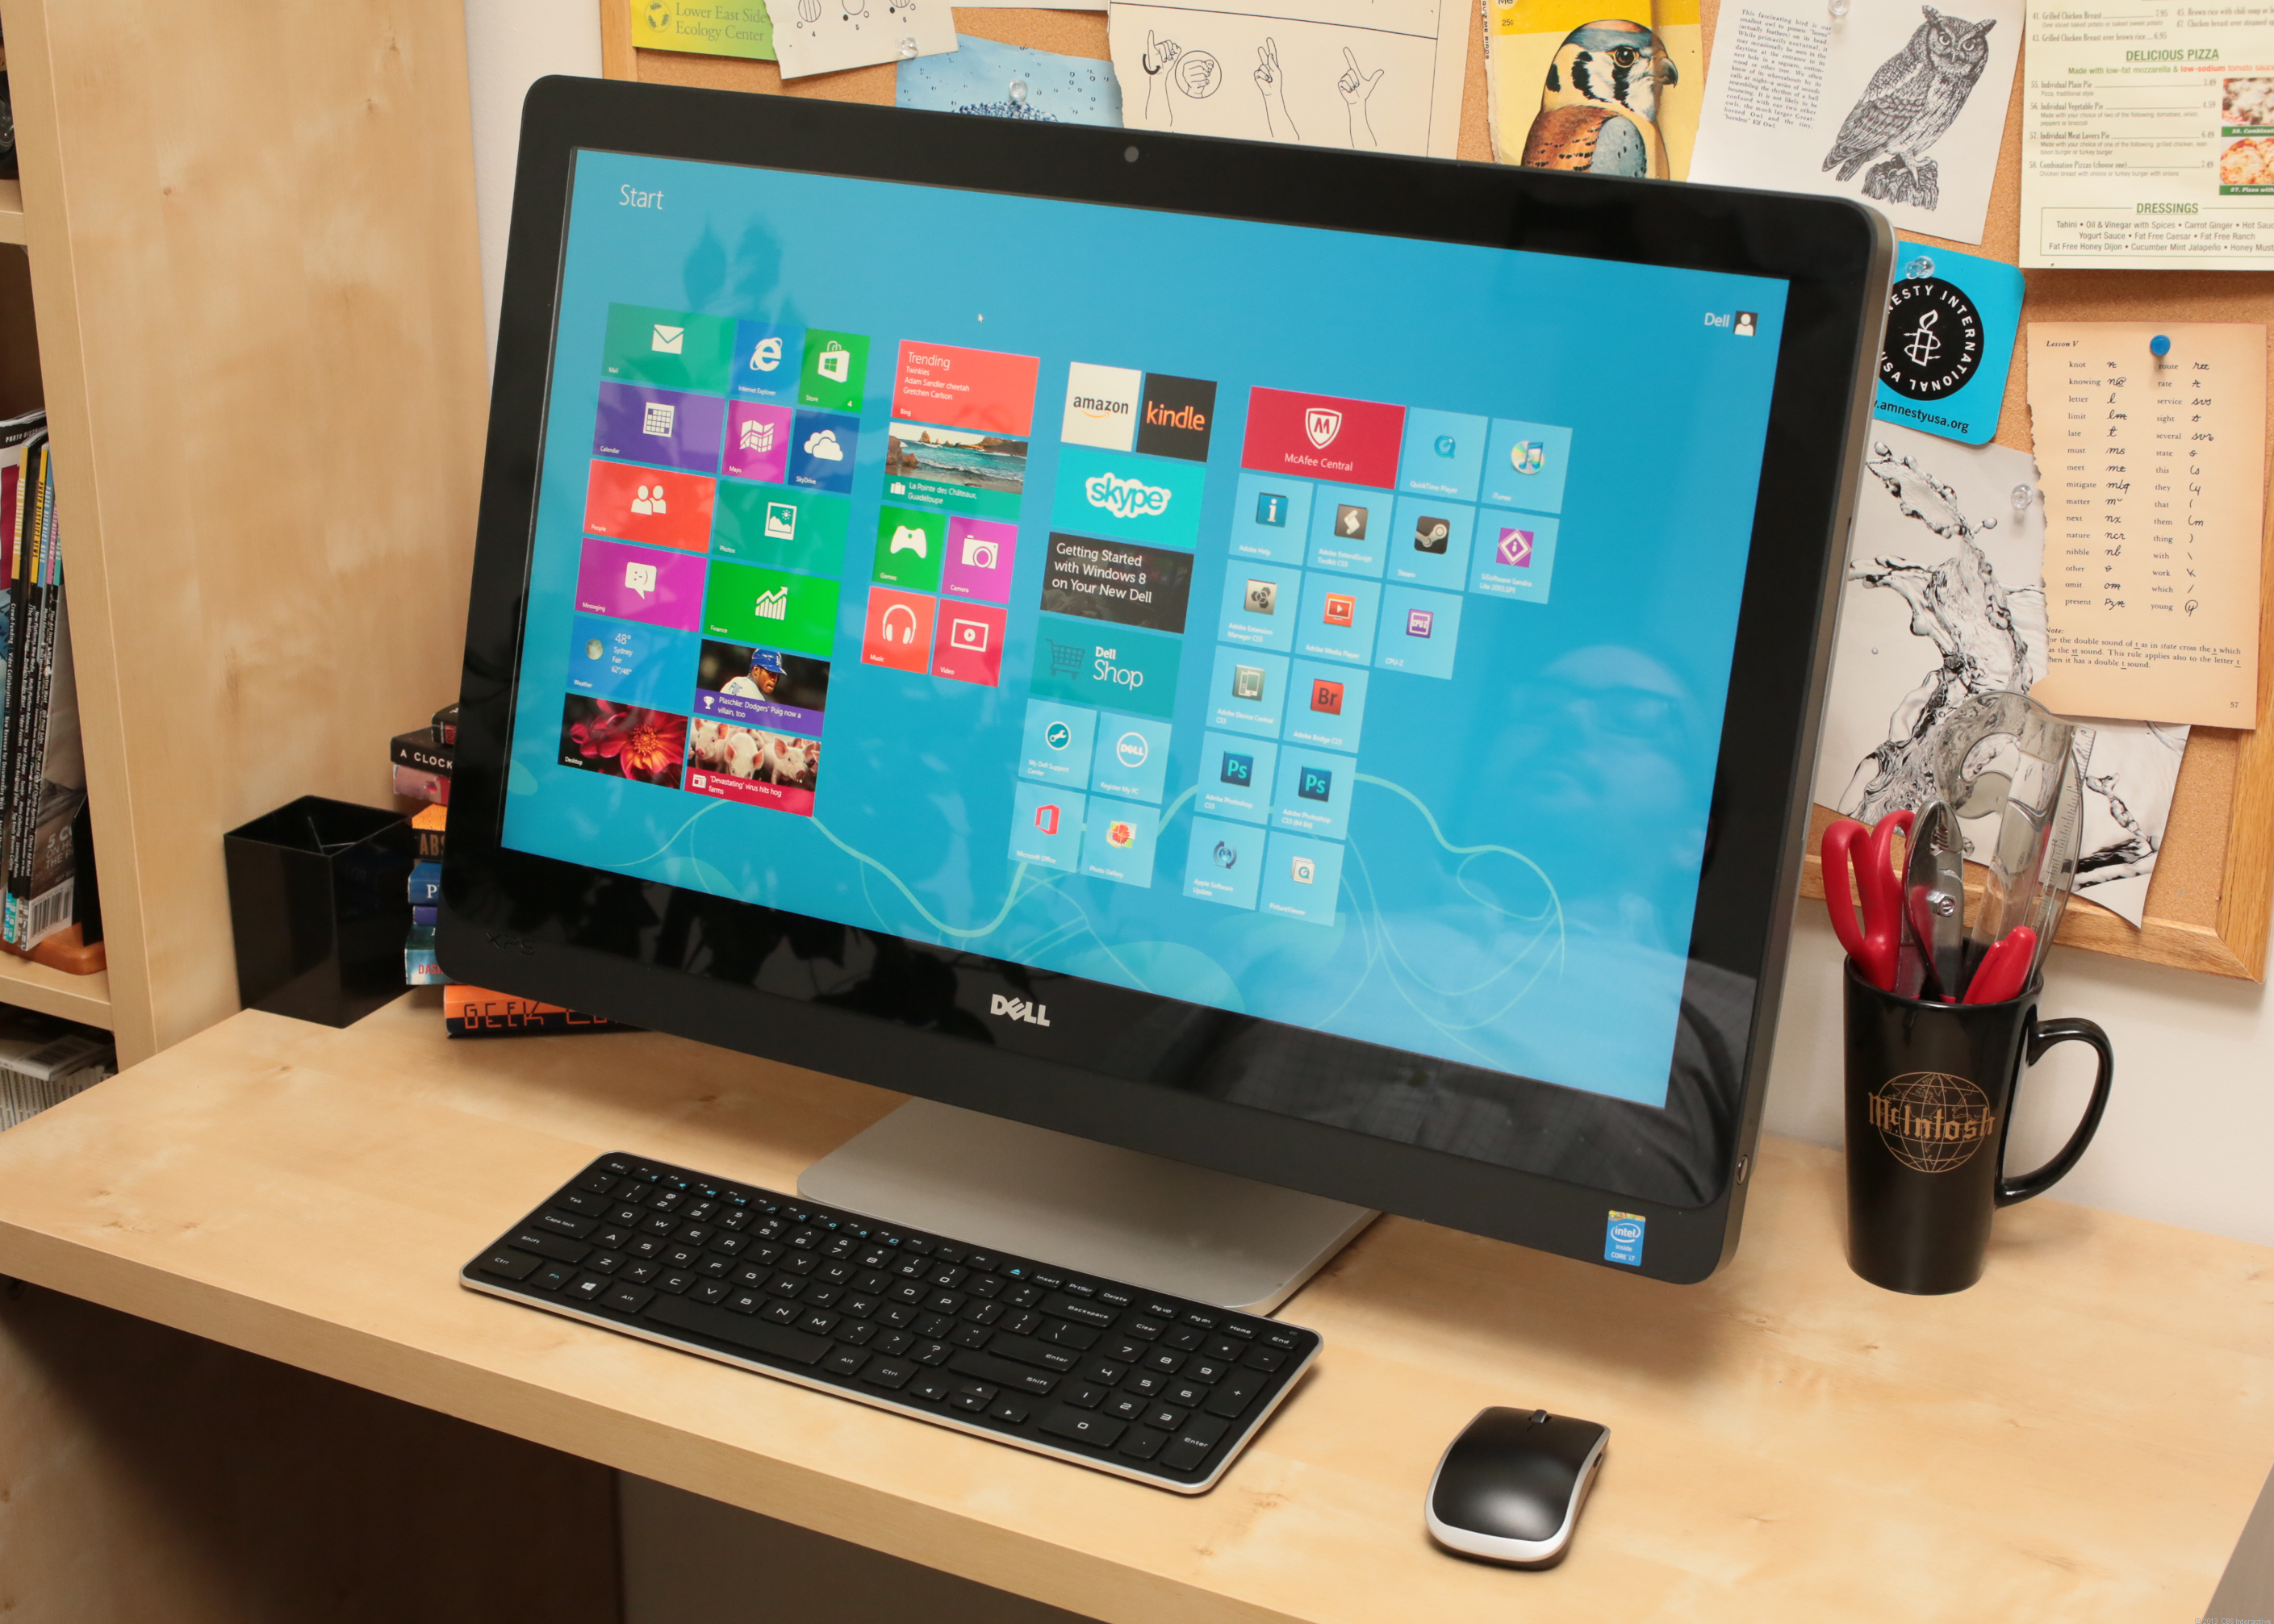 Dell XPS 27 All-in-One Desktop Computer